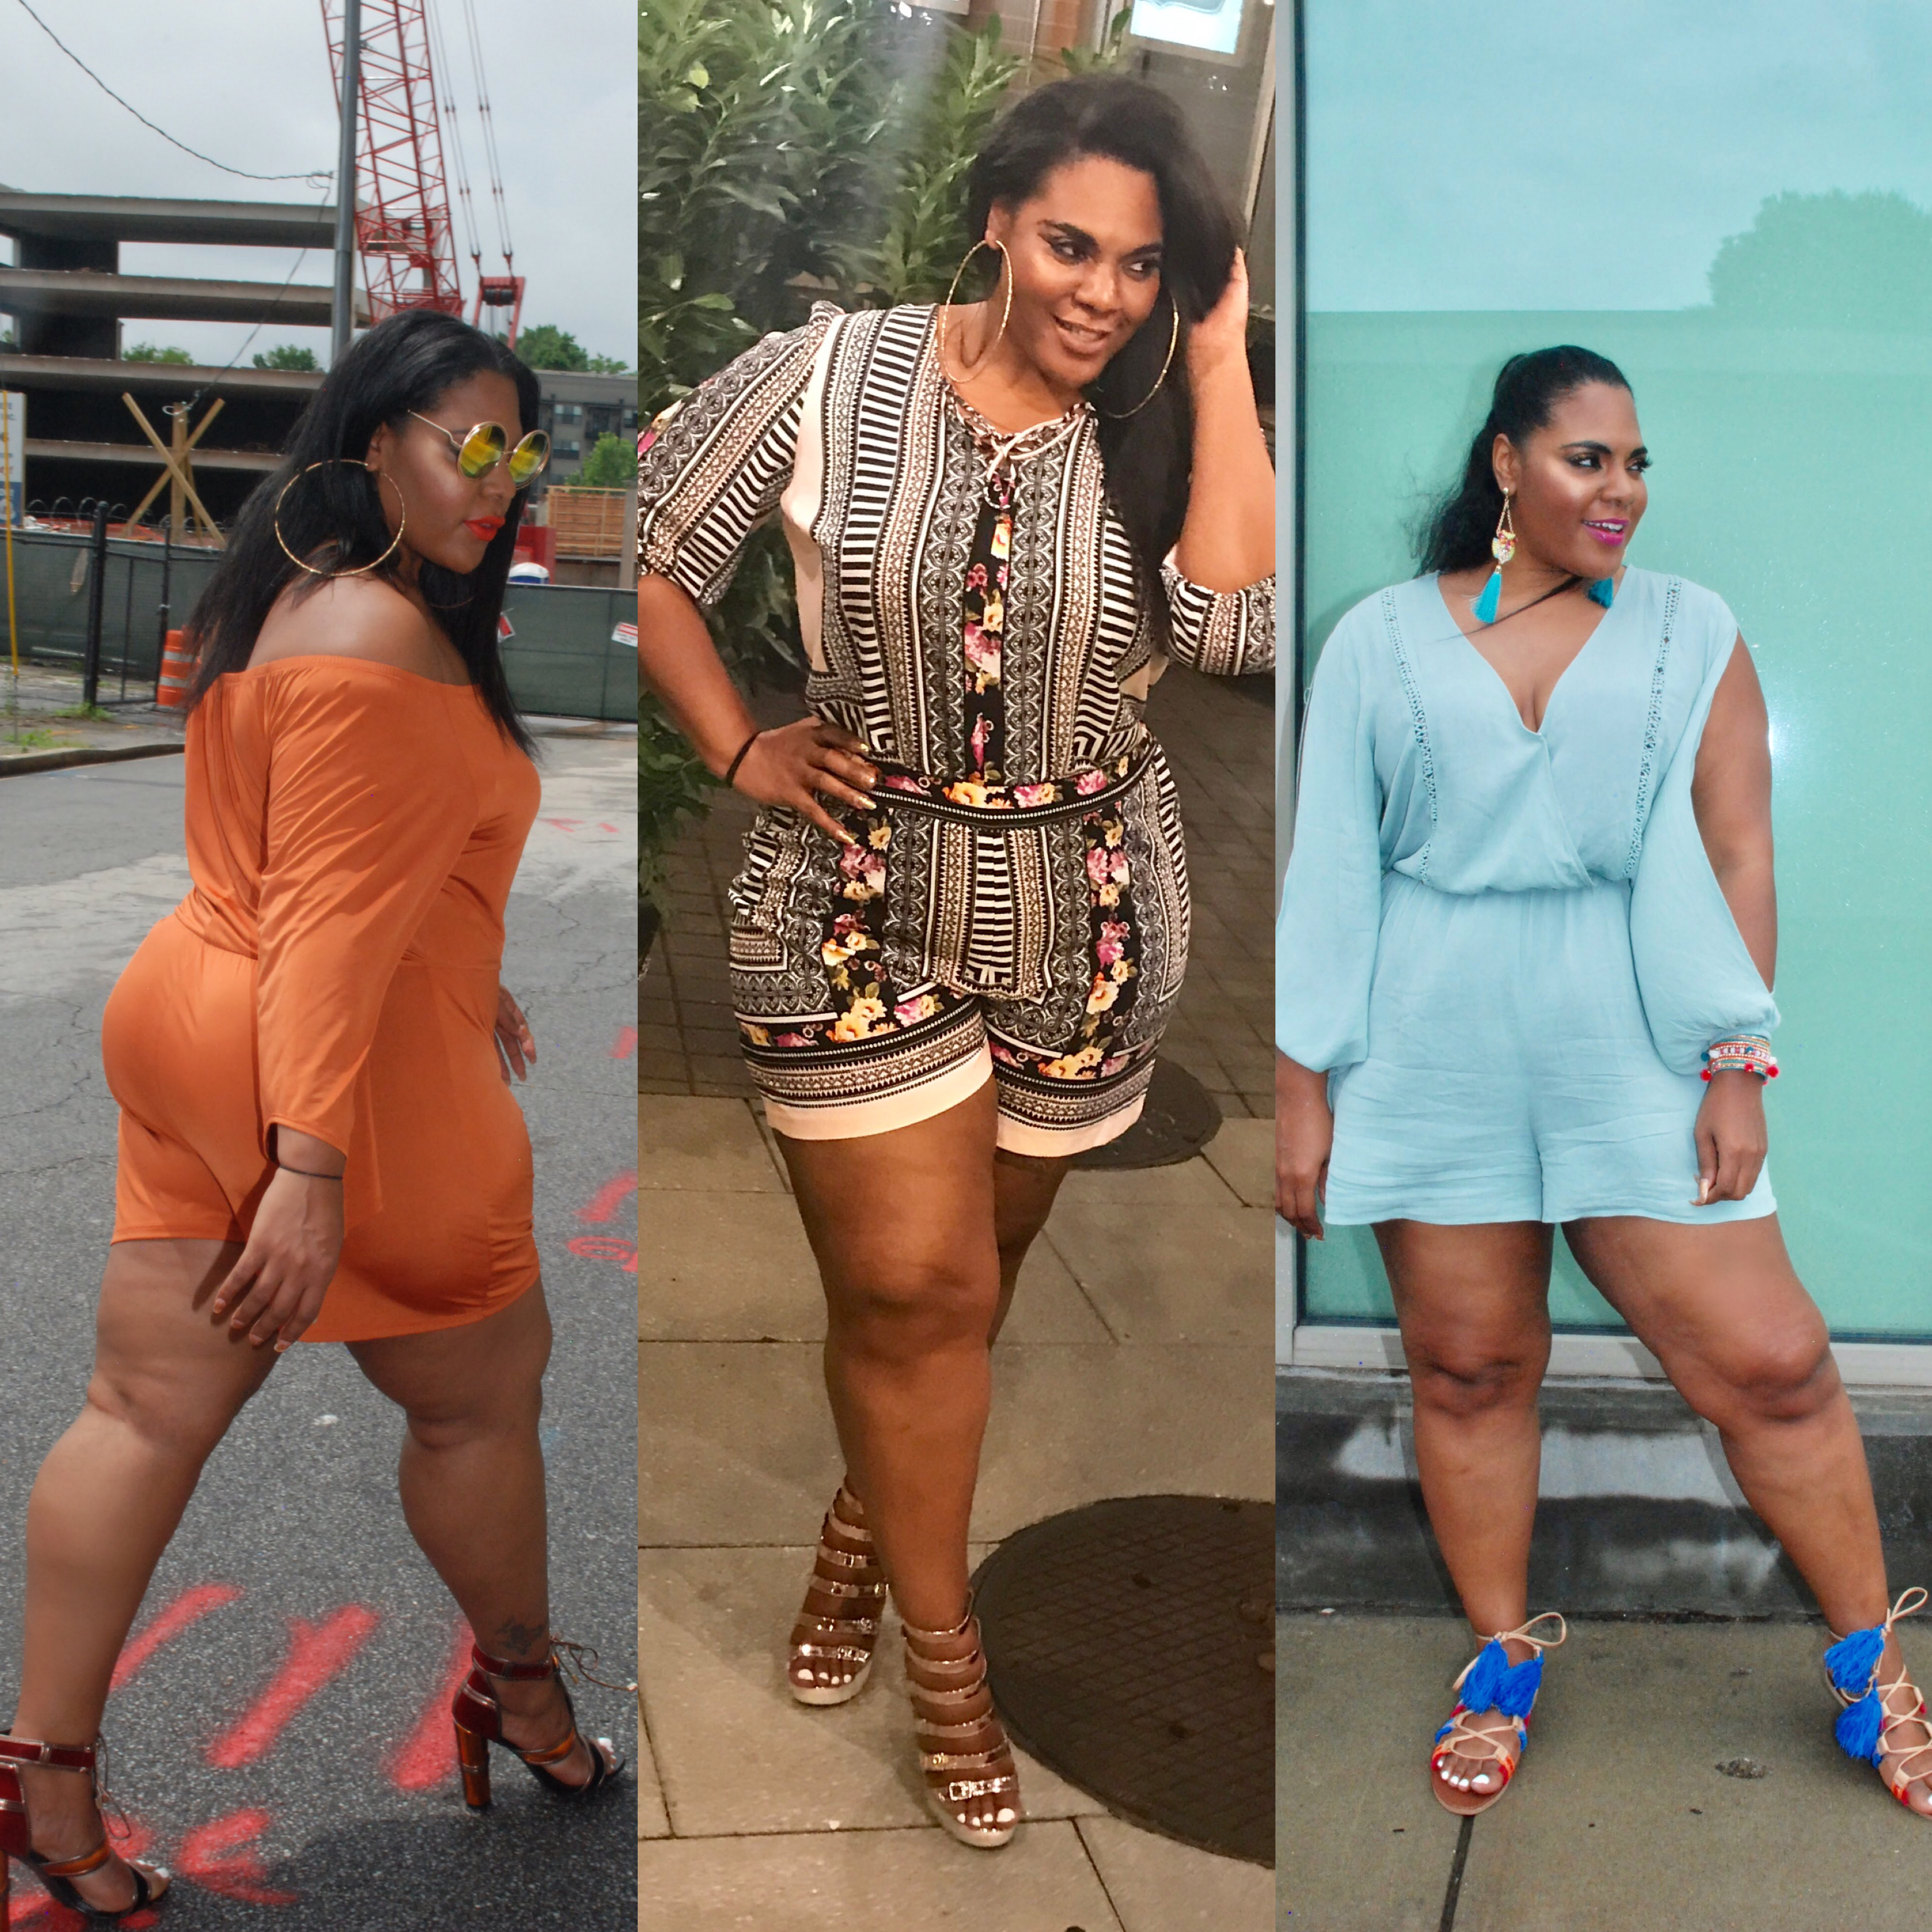 Are Rompers The New Little Black Dress? Here's 14 Must-Have Plus Size Rompers